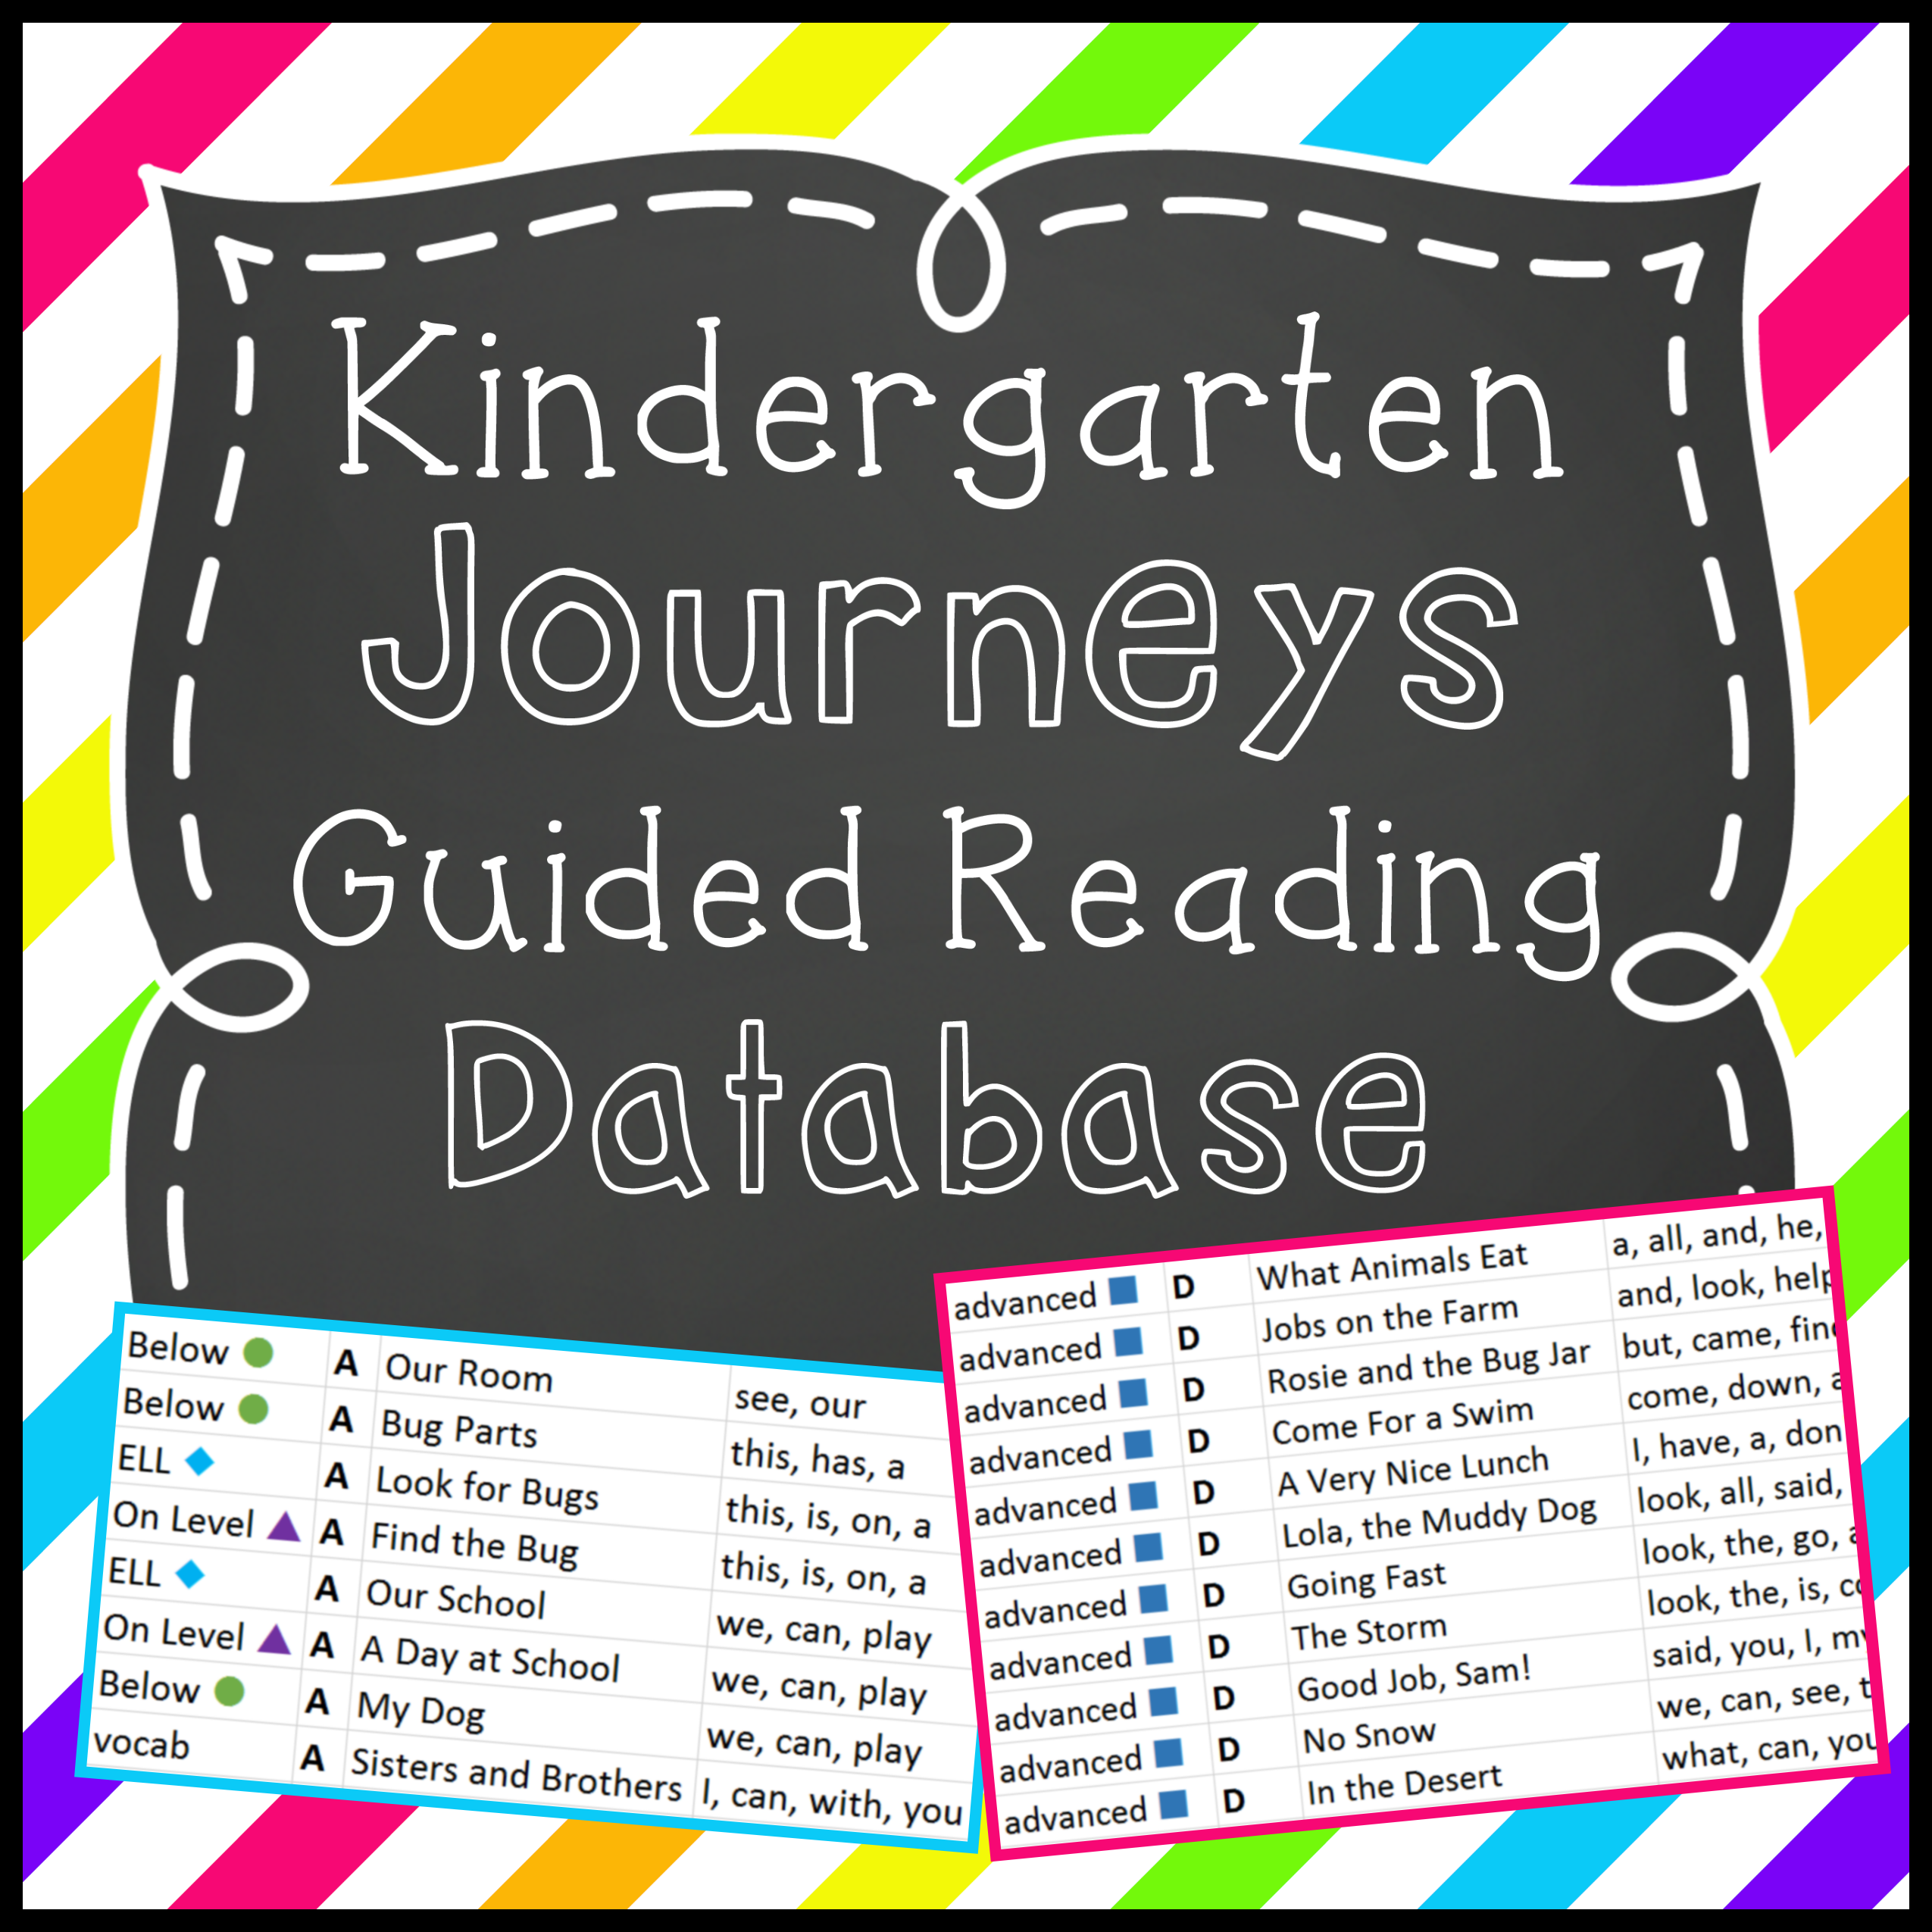 Kingergarten Journeys Guided Reading Database